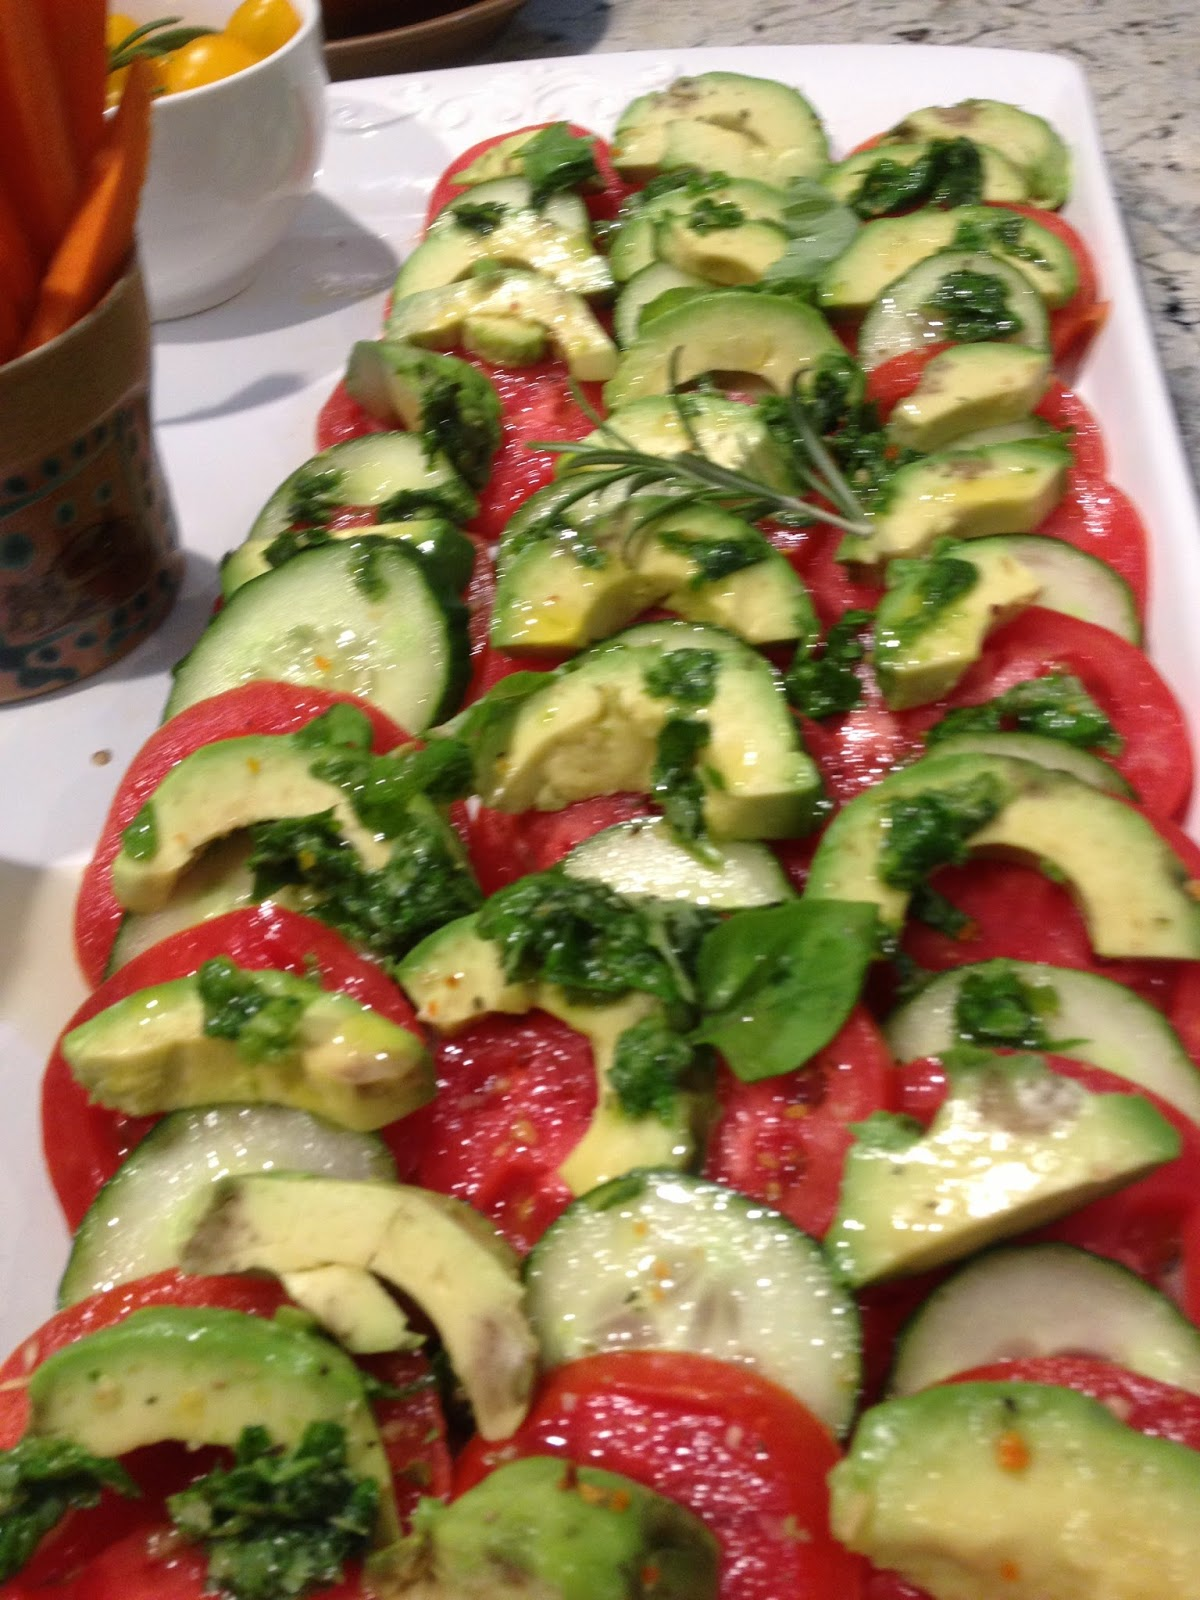 avocado tomatoes and basil on a rectangular plate